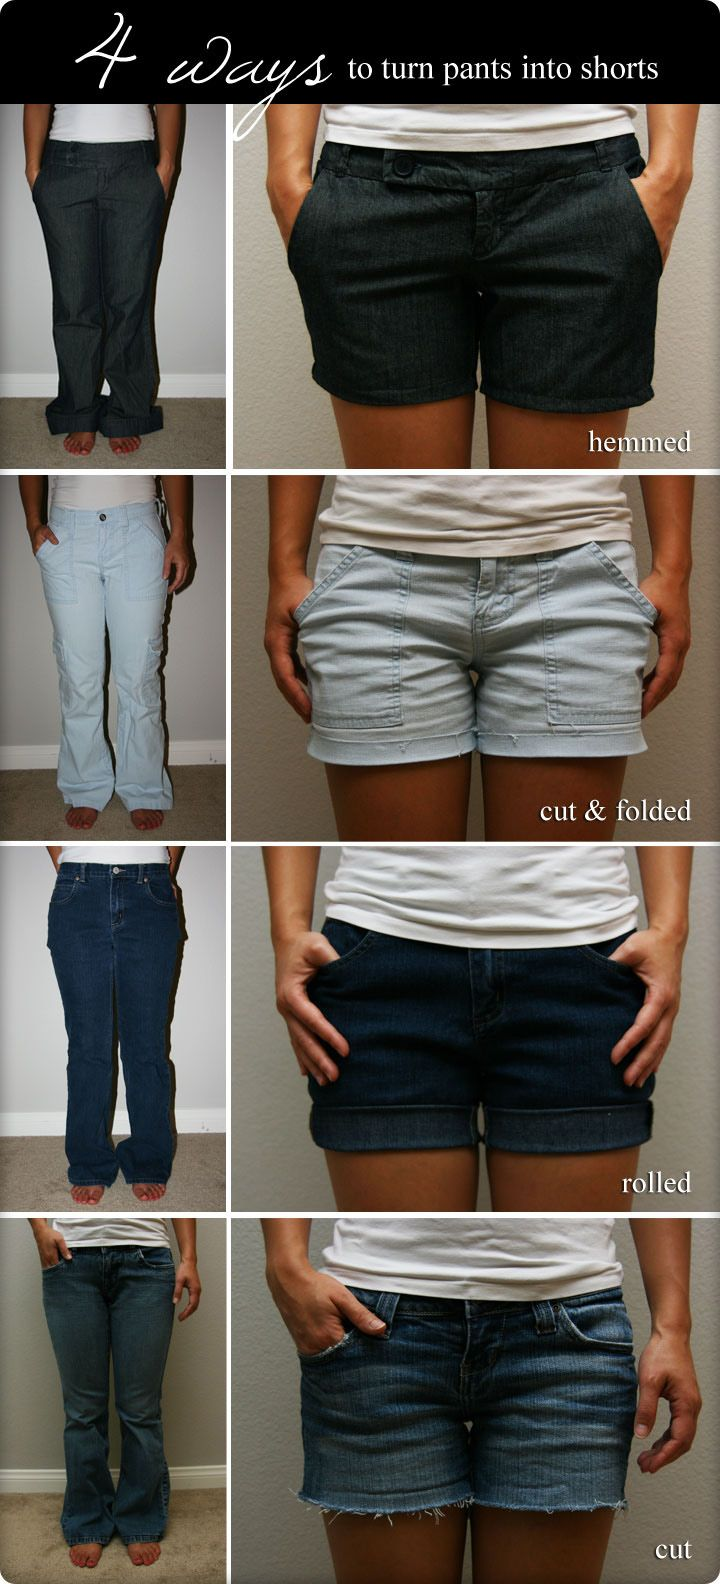 4 Ways to Turn Pants into Shorts and you control the length!